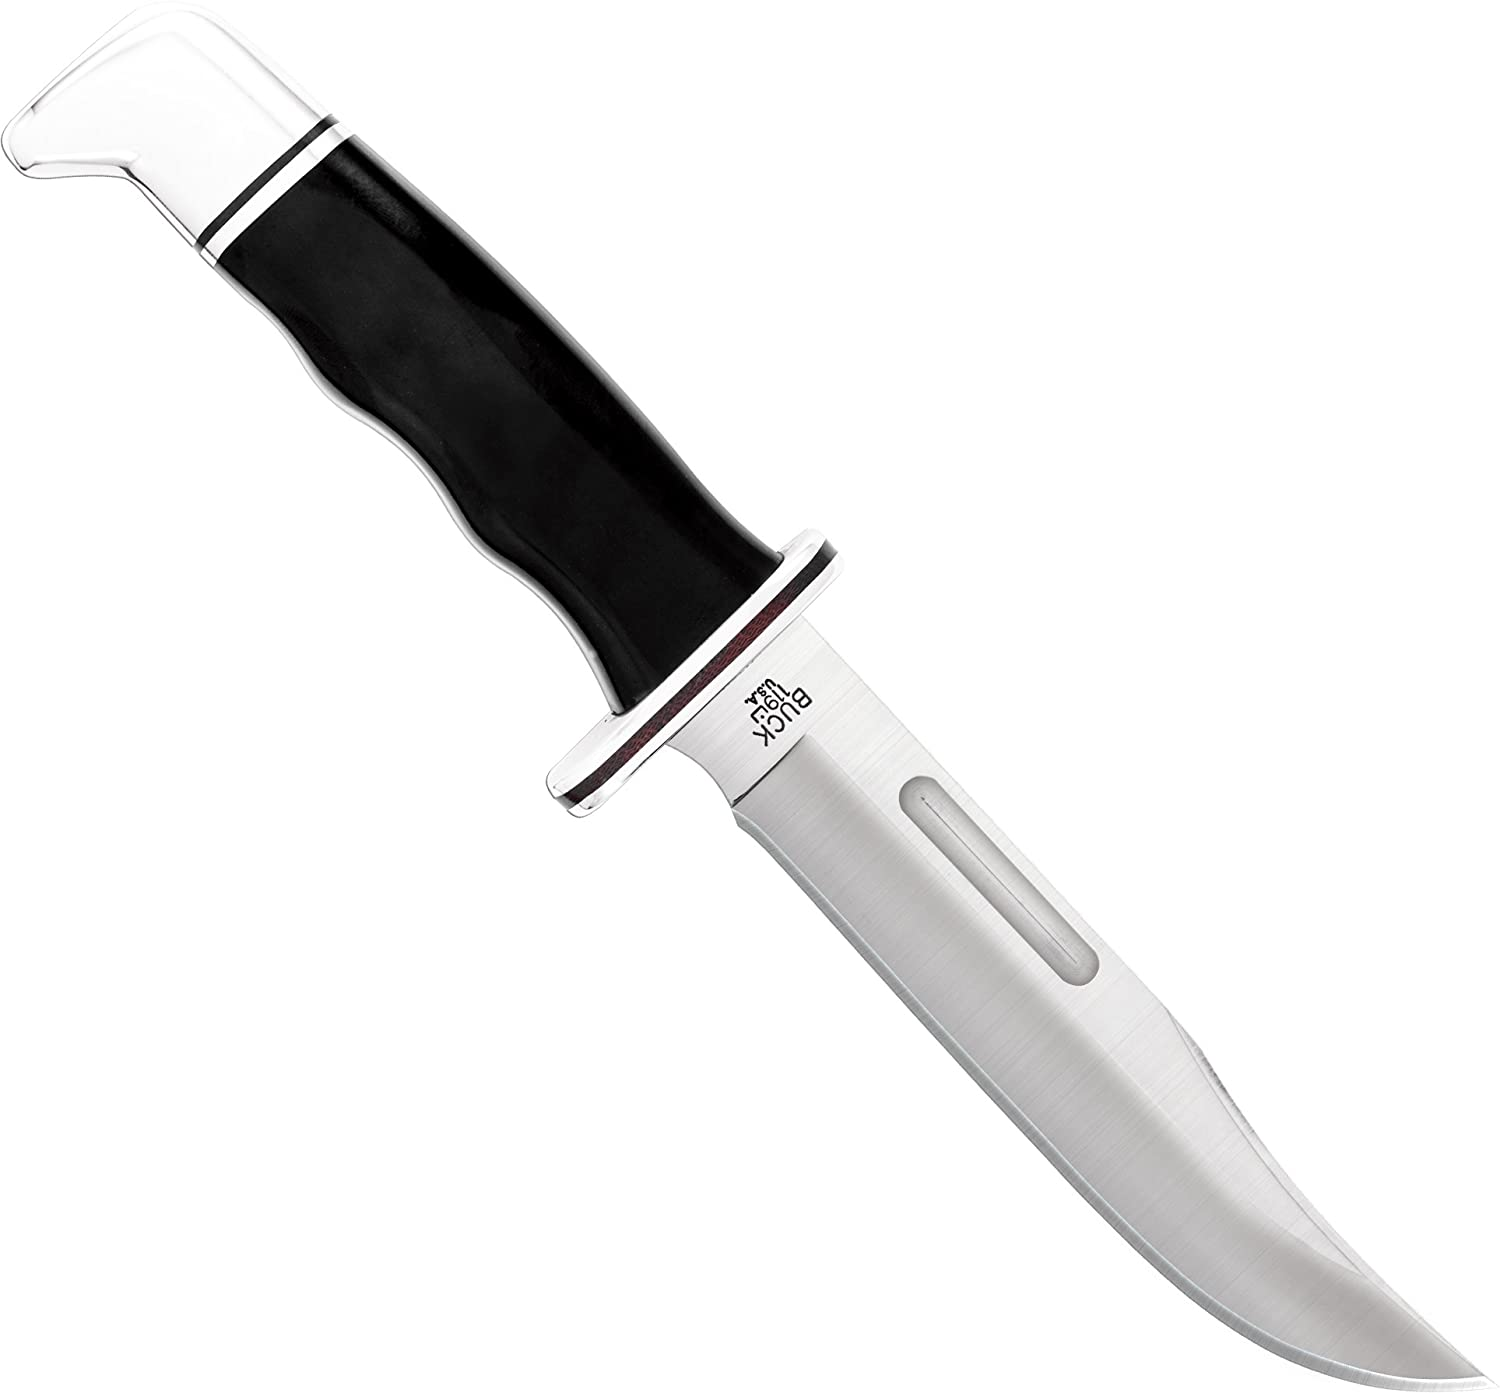 7. BUCK KNIVES 119 SPECIAL FIXED BLADE KNIFE